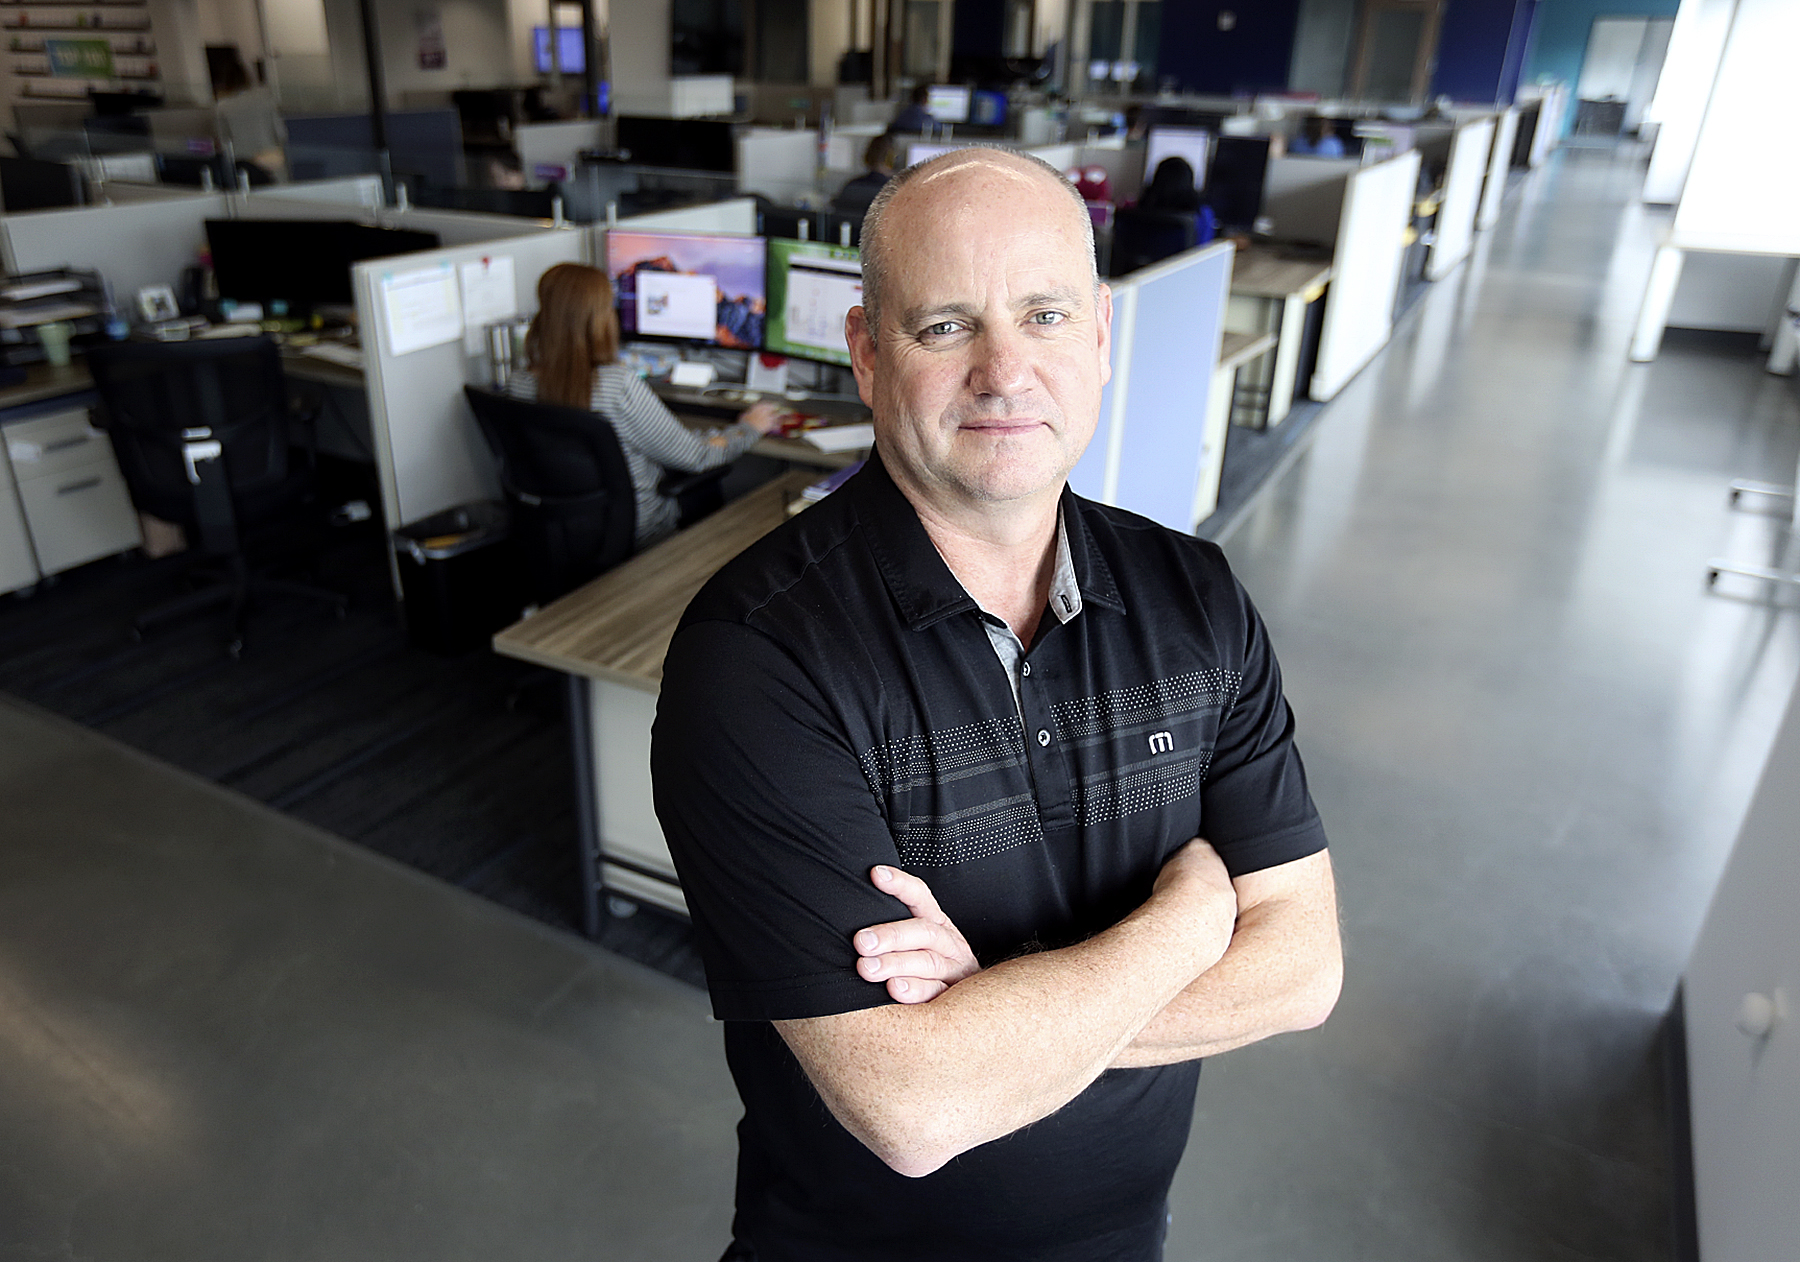 Steve Smith, Finicity CEO and co-founder, poses for a photograph at Finicity in Murray on Friday, Sept. 27, 2019.